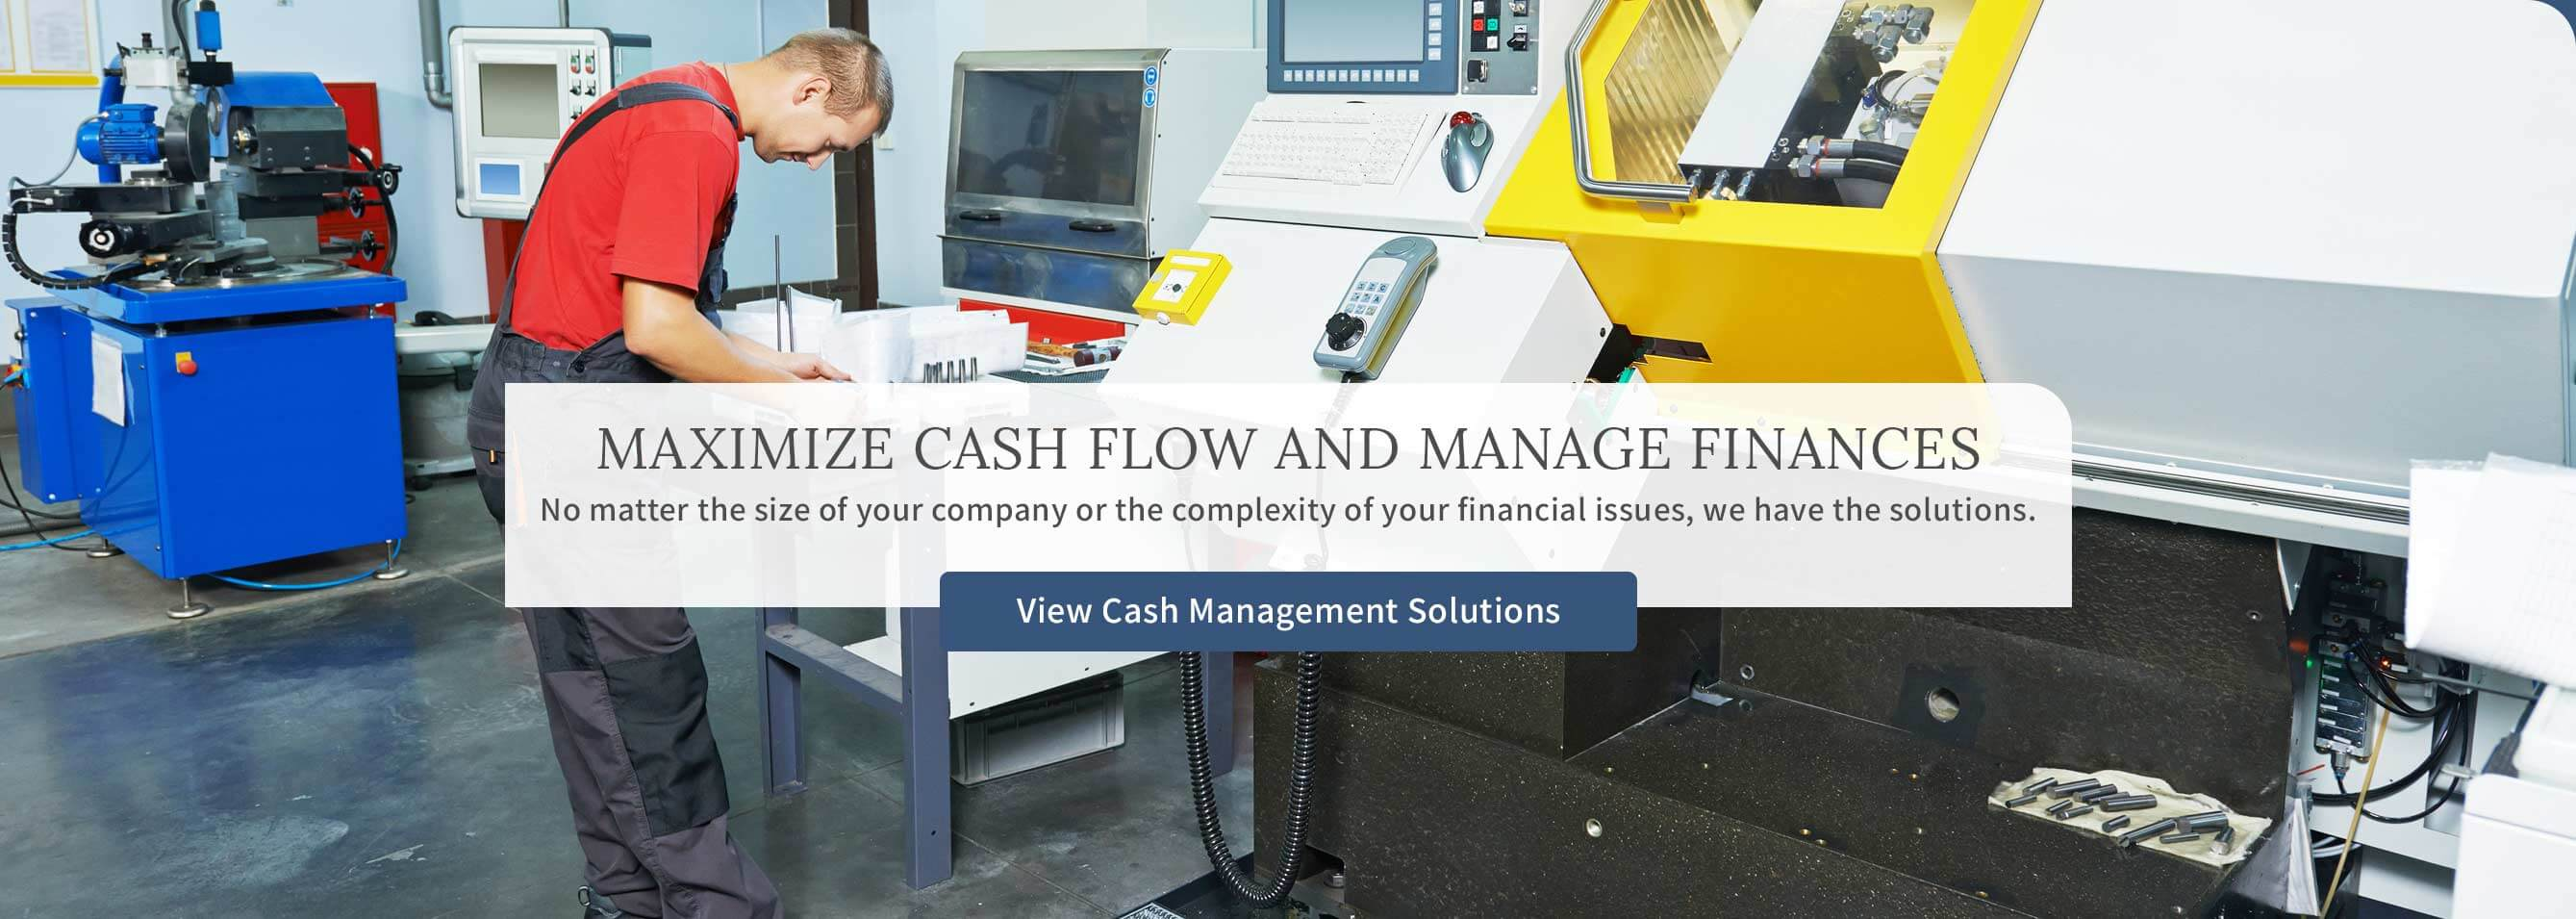 maximize cash flow and  manage finances.  No matter the size of your company or the complexity of  your financial issues, we have the solutions. View Cash Management Solutions